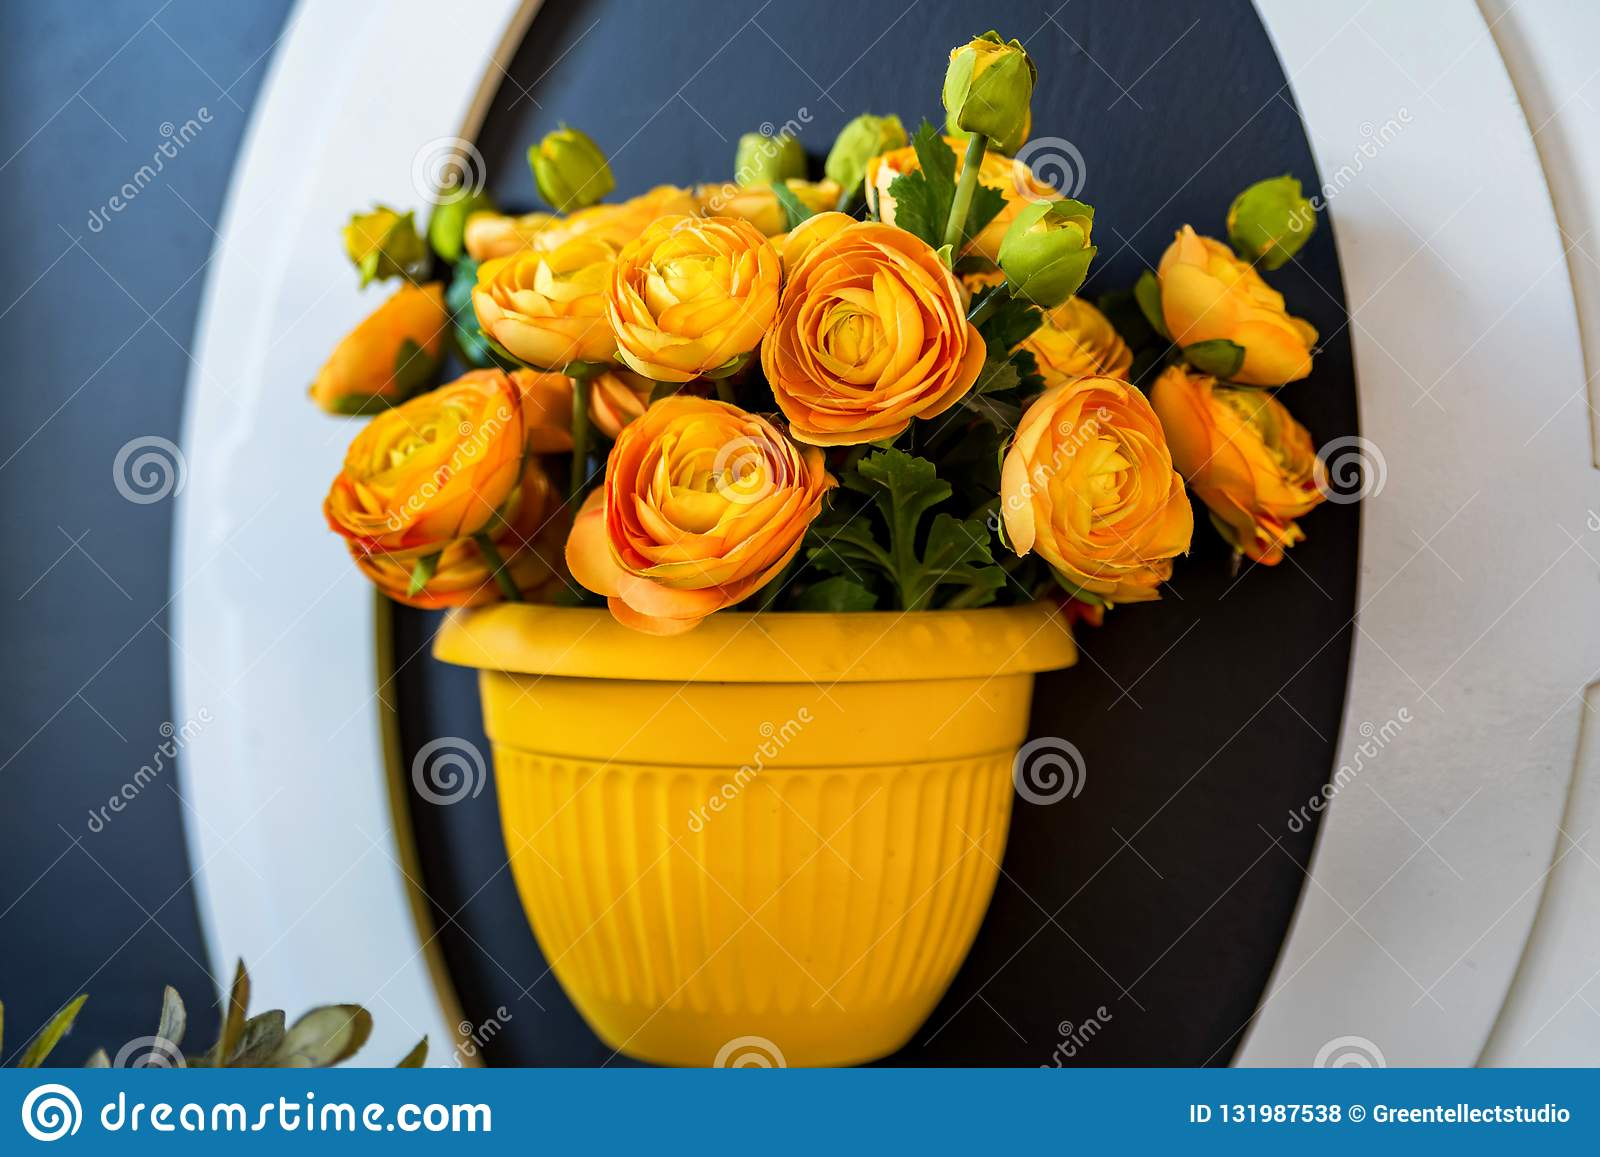 Artificial Orange Rose Flowers In Vase On Wall Stock Photo ...